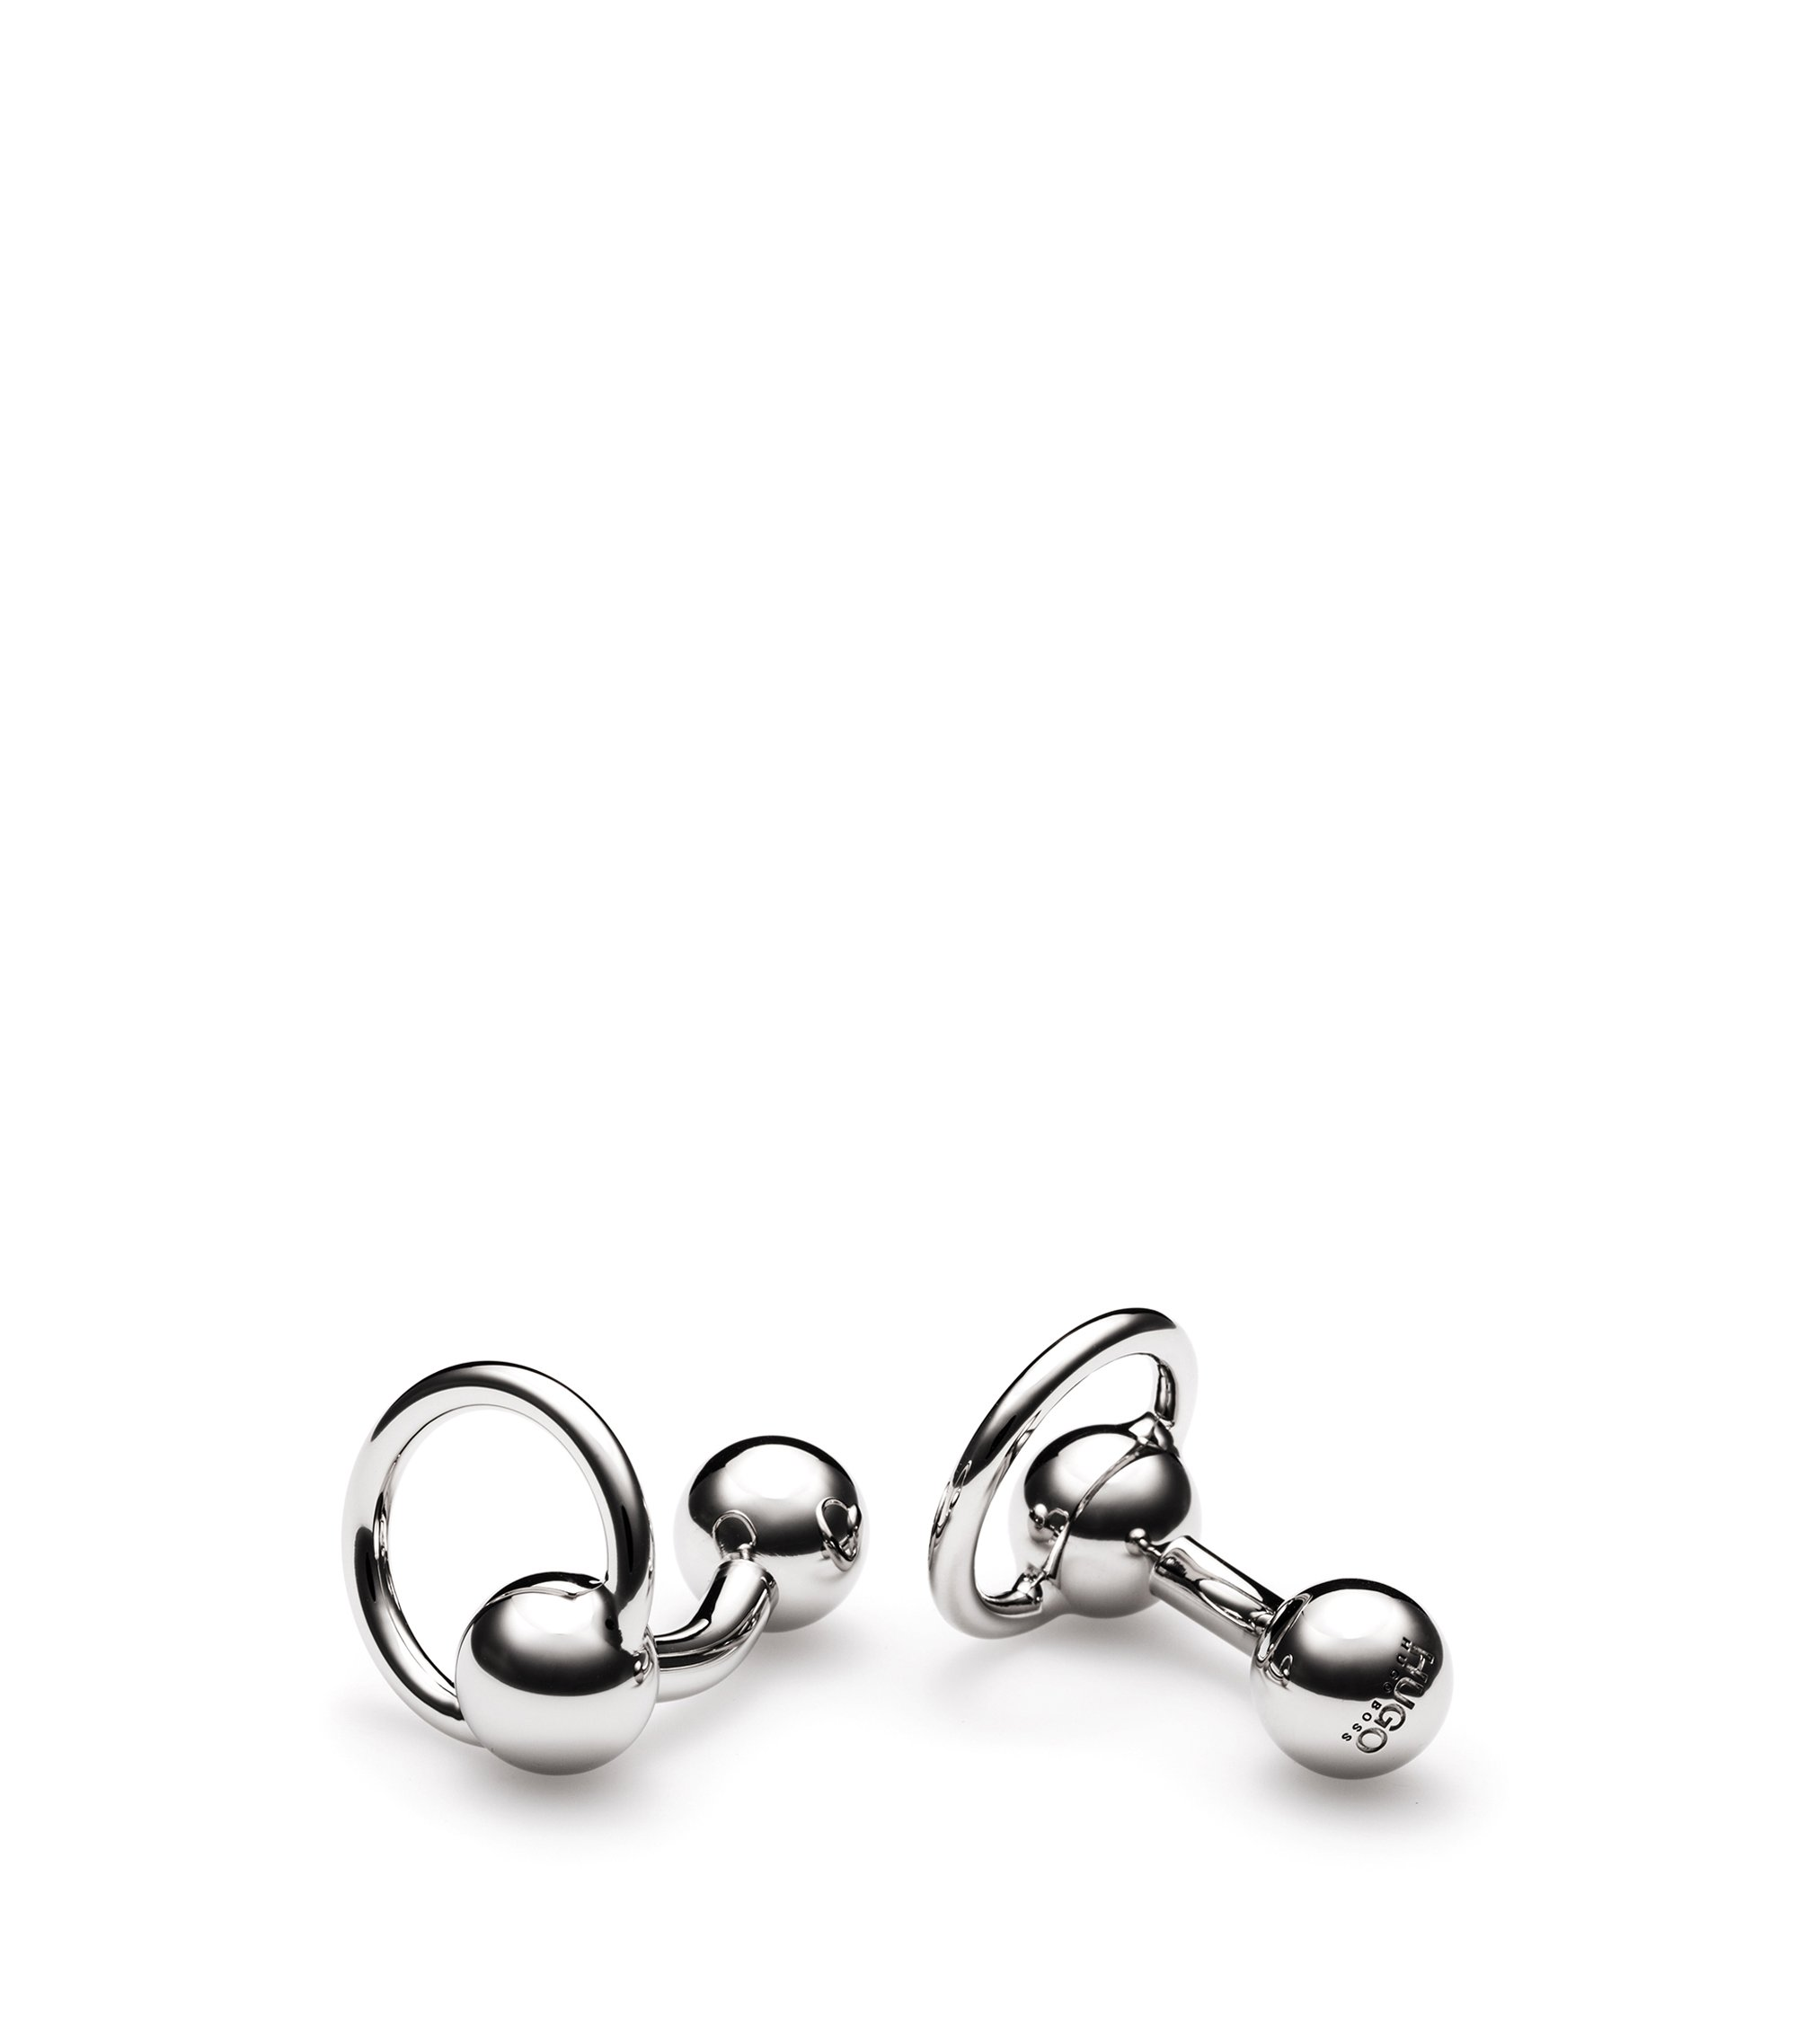 Piercing-design cufflinks in polished brass, Silver